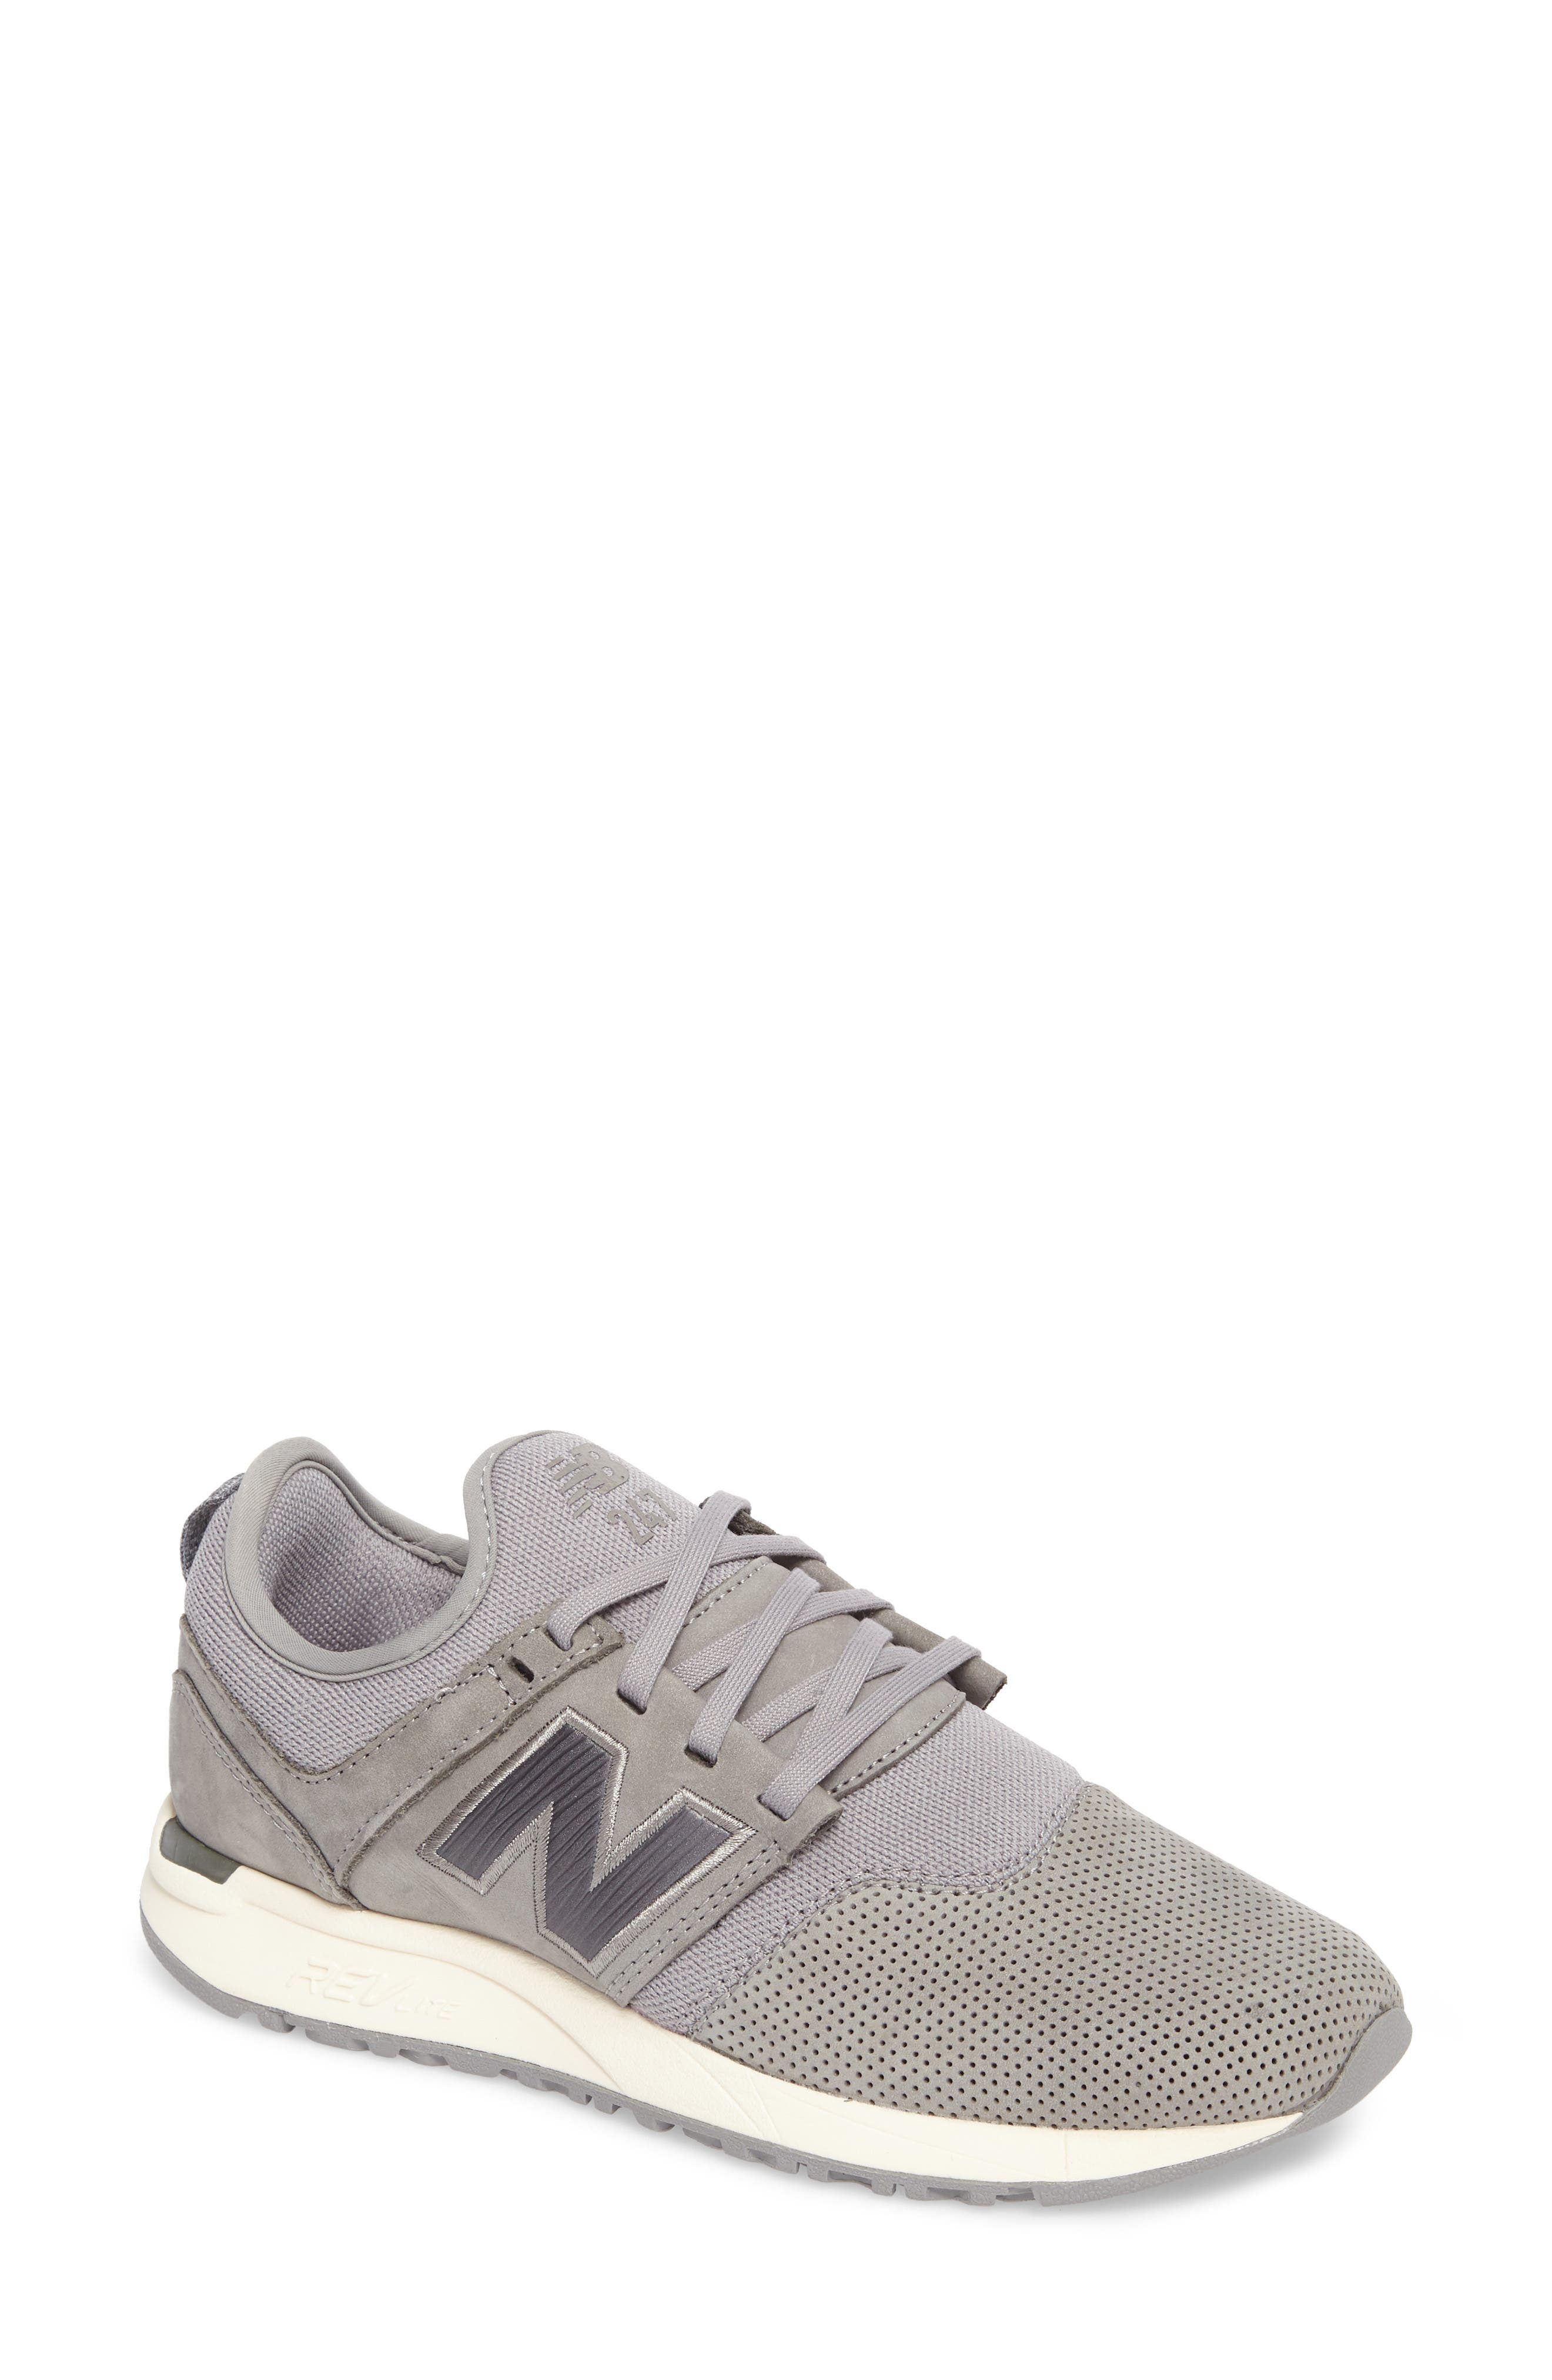 Sport Style 247 Sneaker,                             Main thumbnail 1, color,                             Marblehead